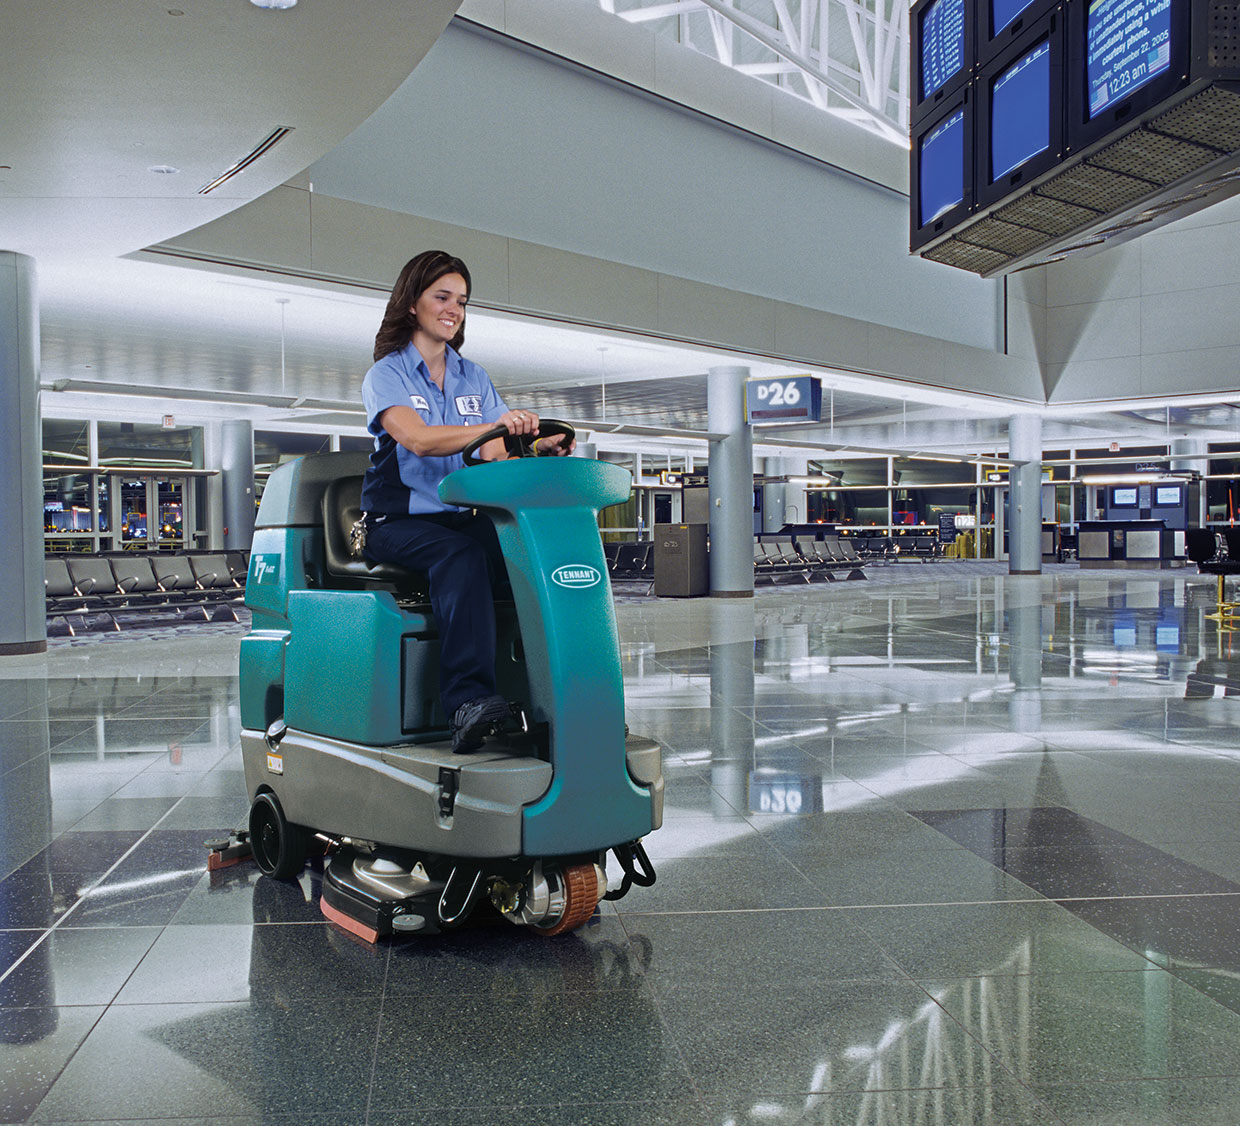 Cleaning industry employee cleaning airport with T7 Rider Scrubber